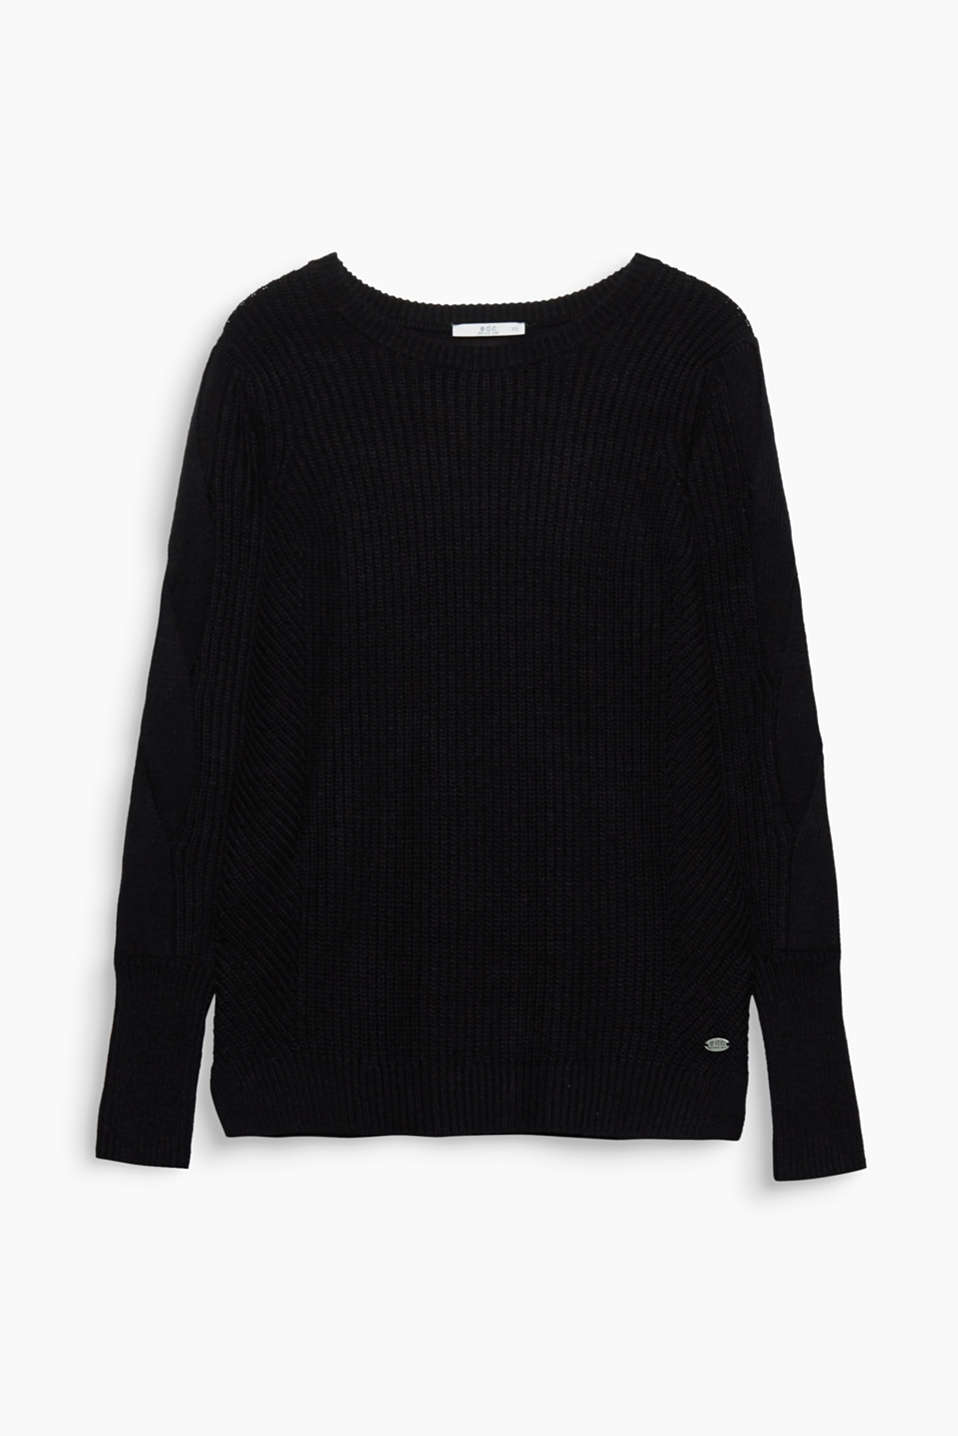 The cable pattern on the sleeves as well as mix of smooth and rib knit fabric give this jumper a trendy look.